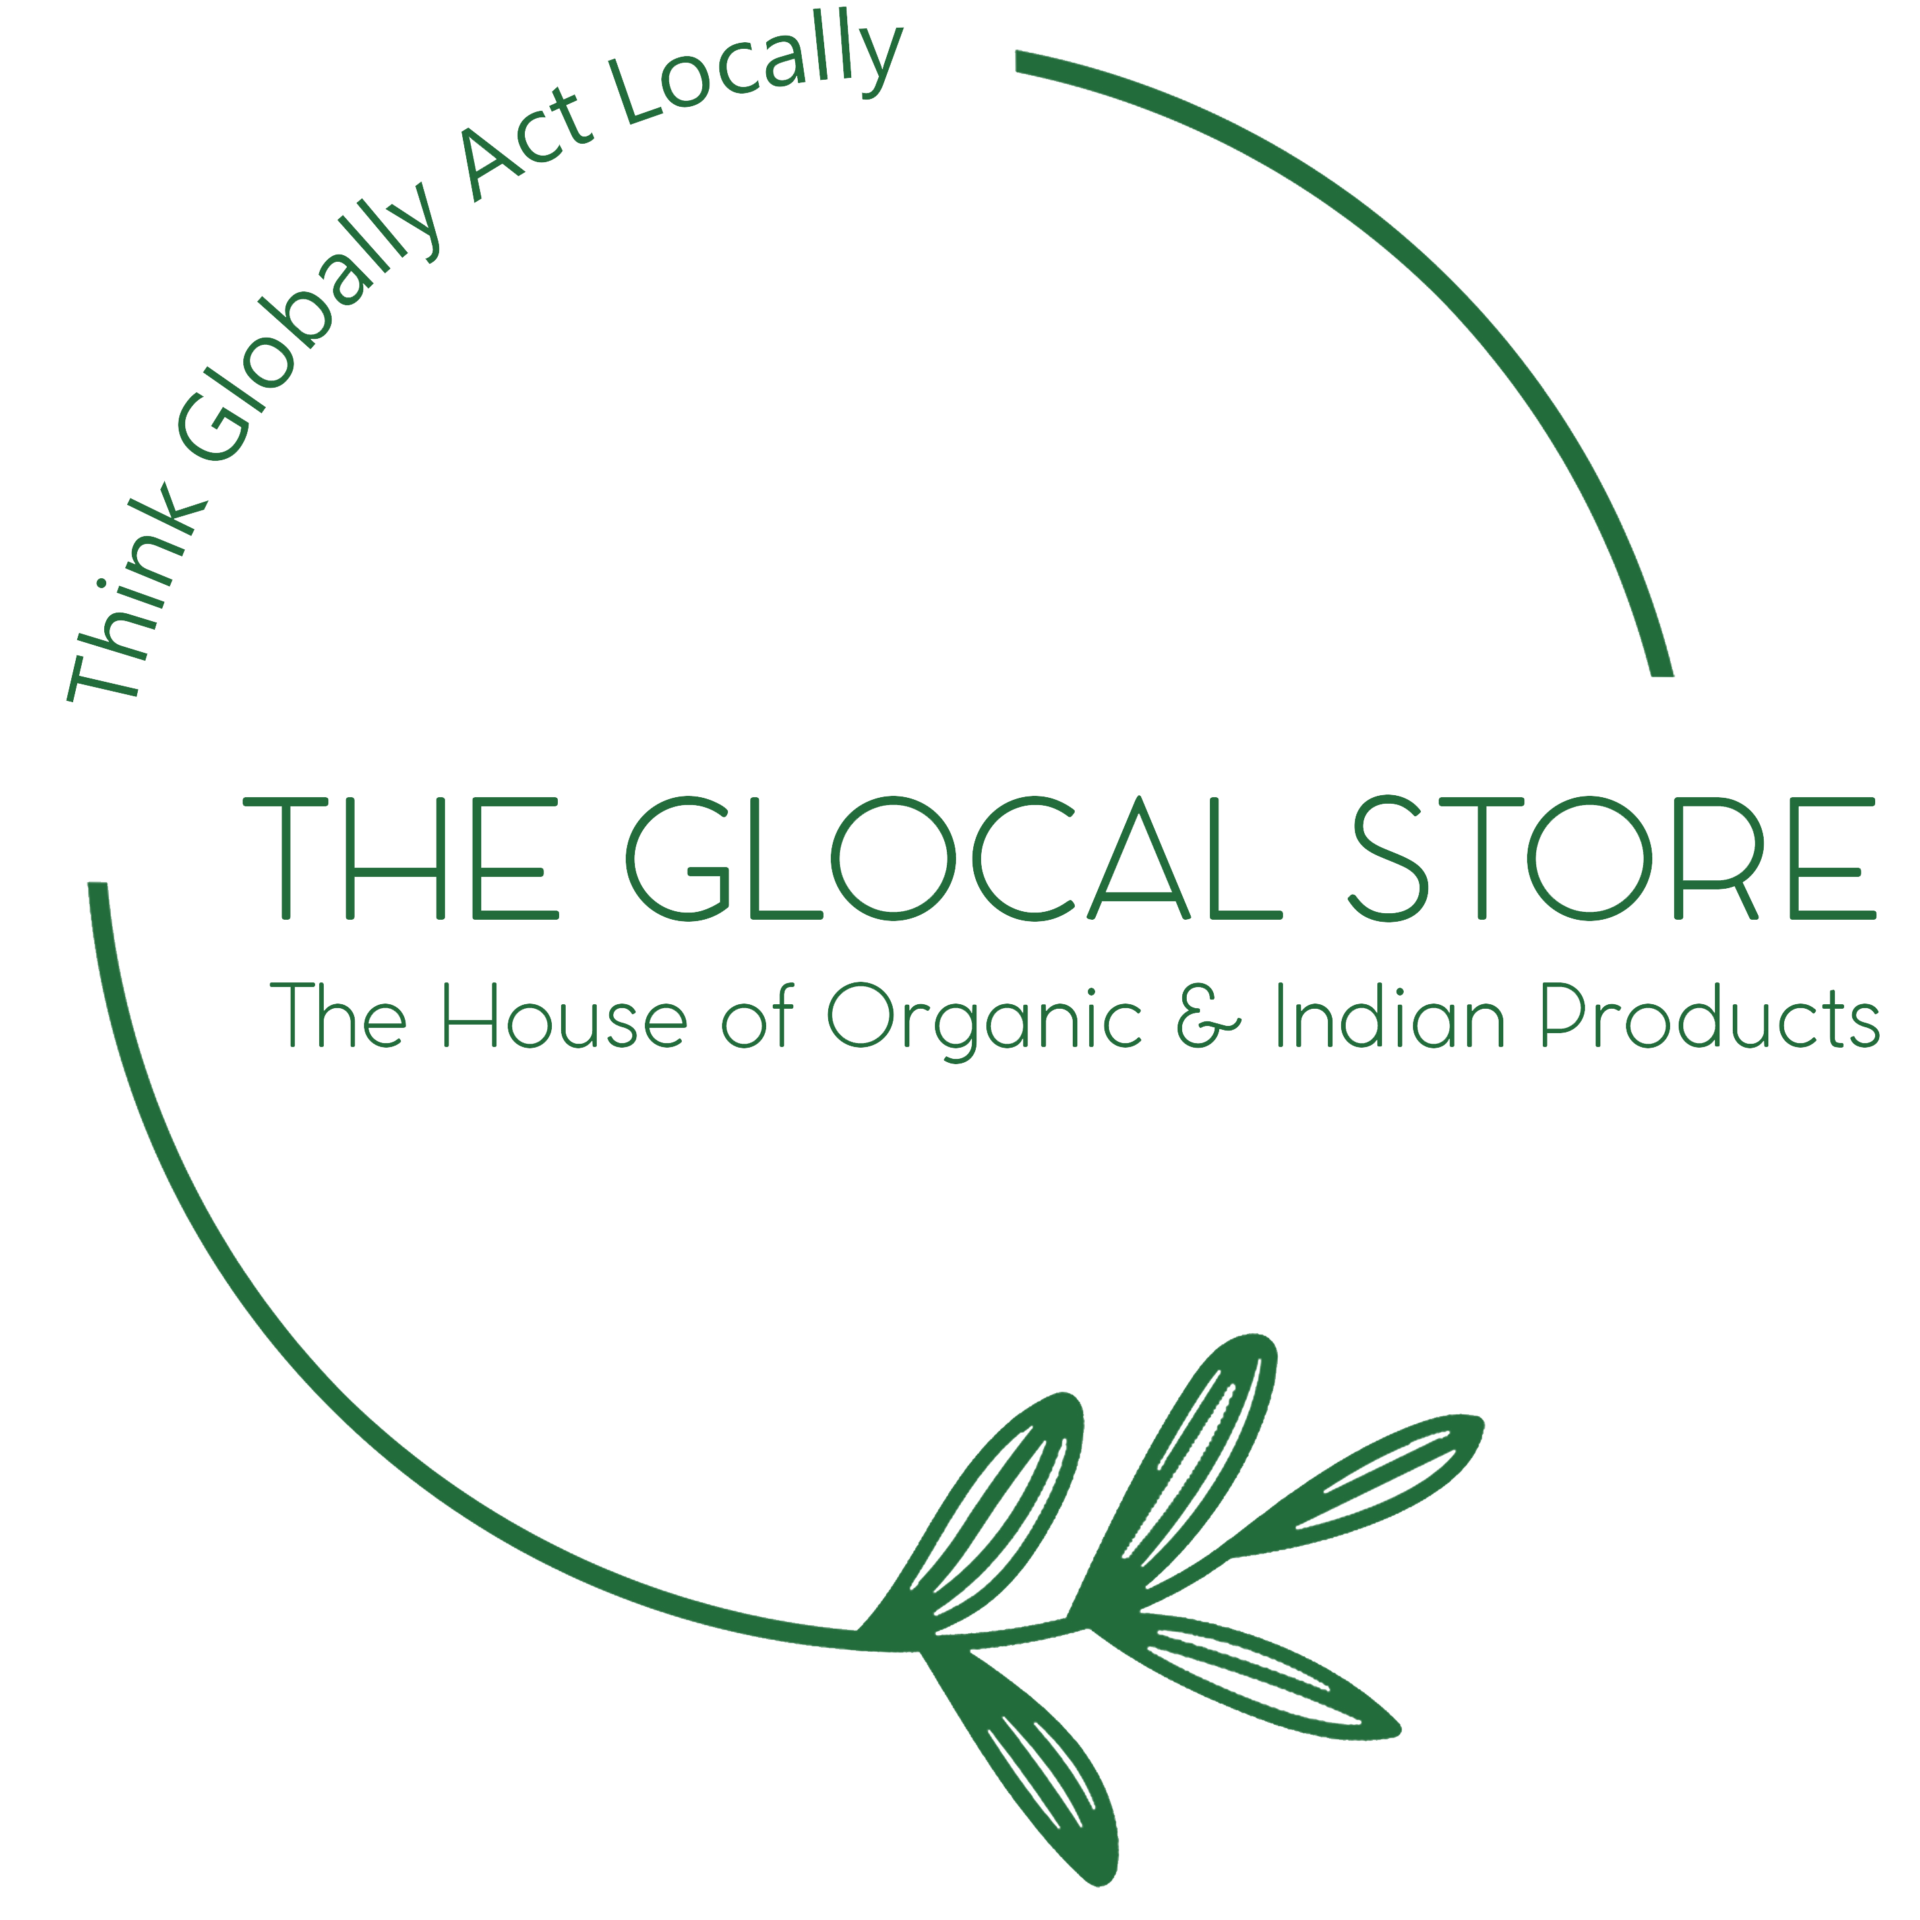 THE GLOCAL STORE